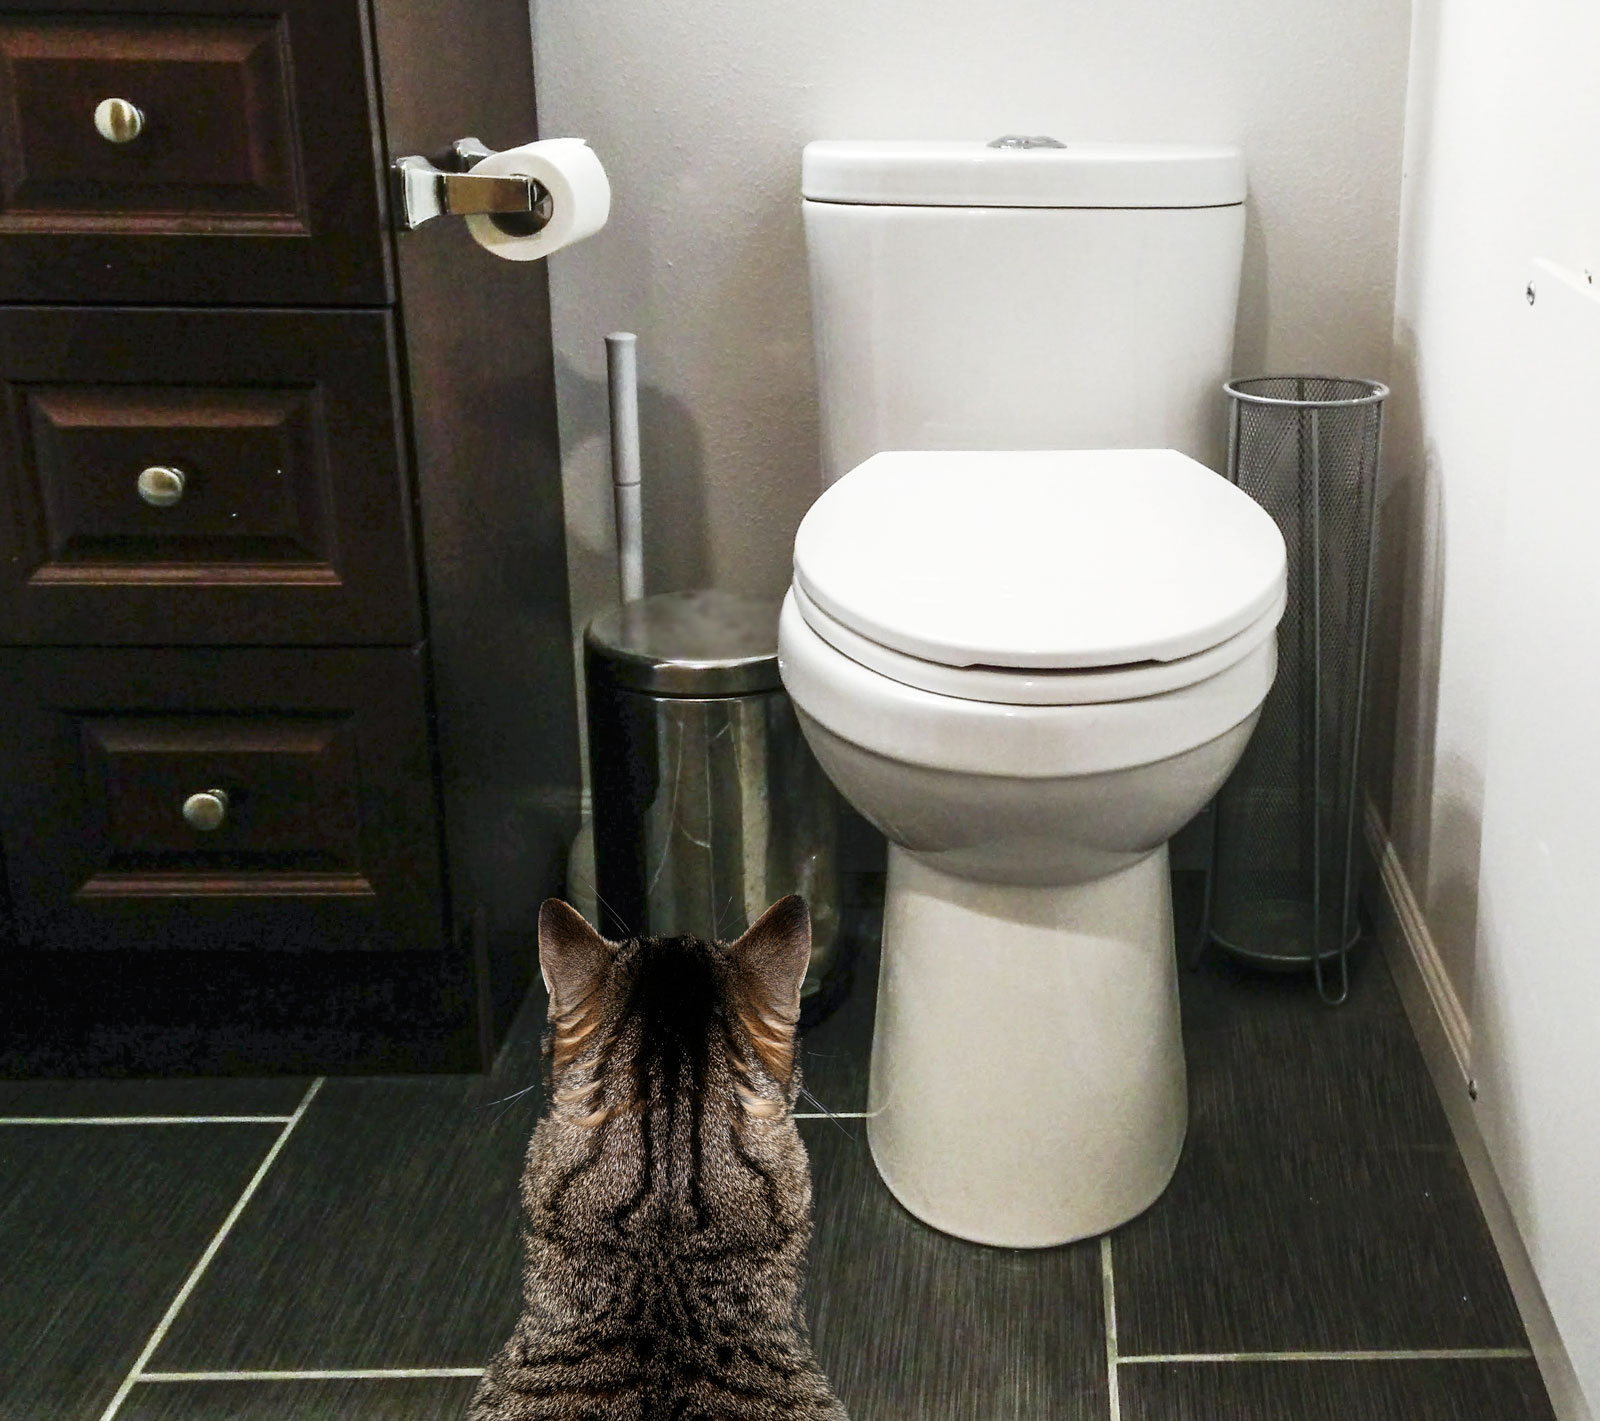 7 reasons not to toilet train your cat